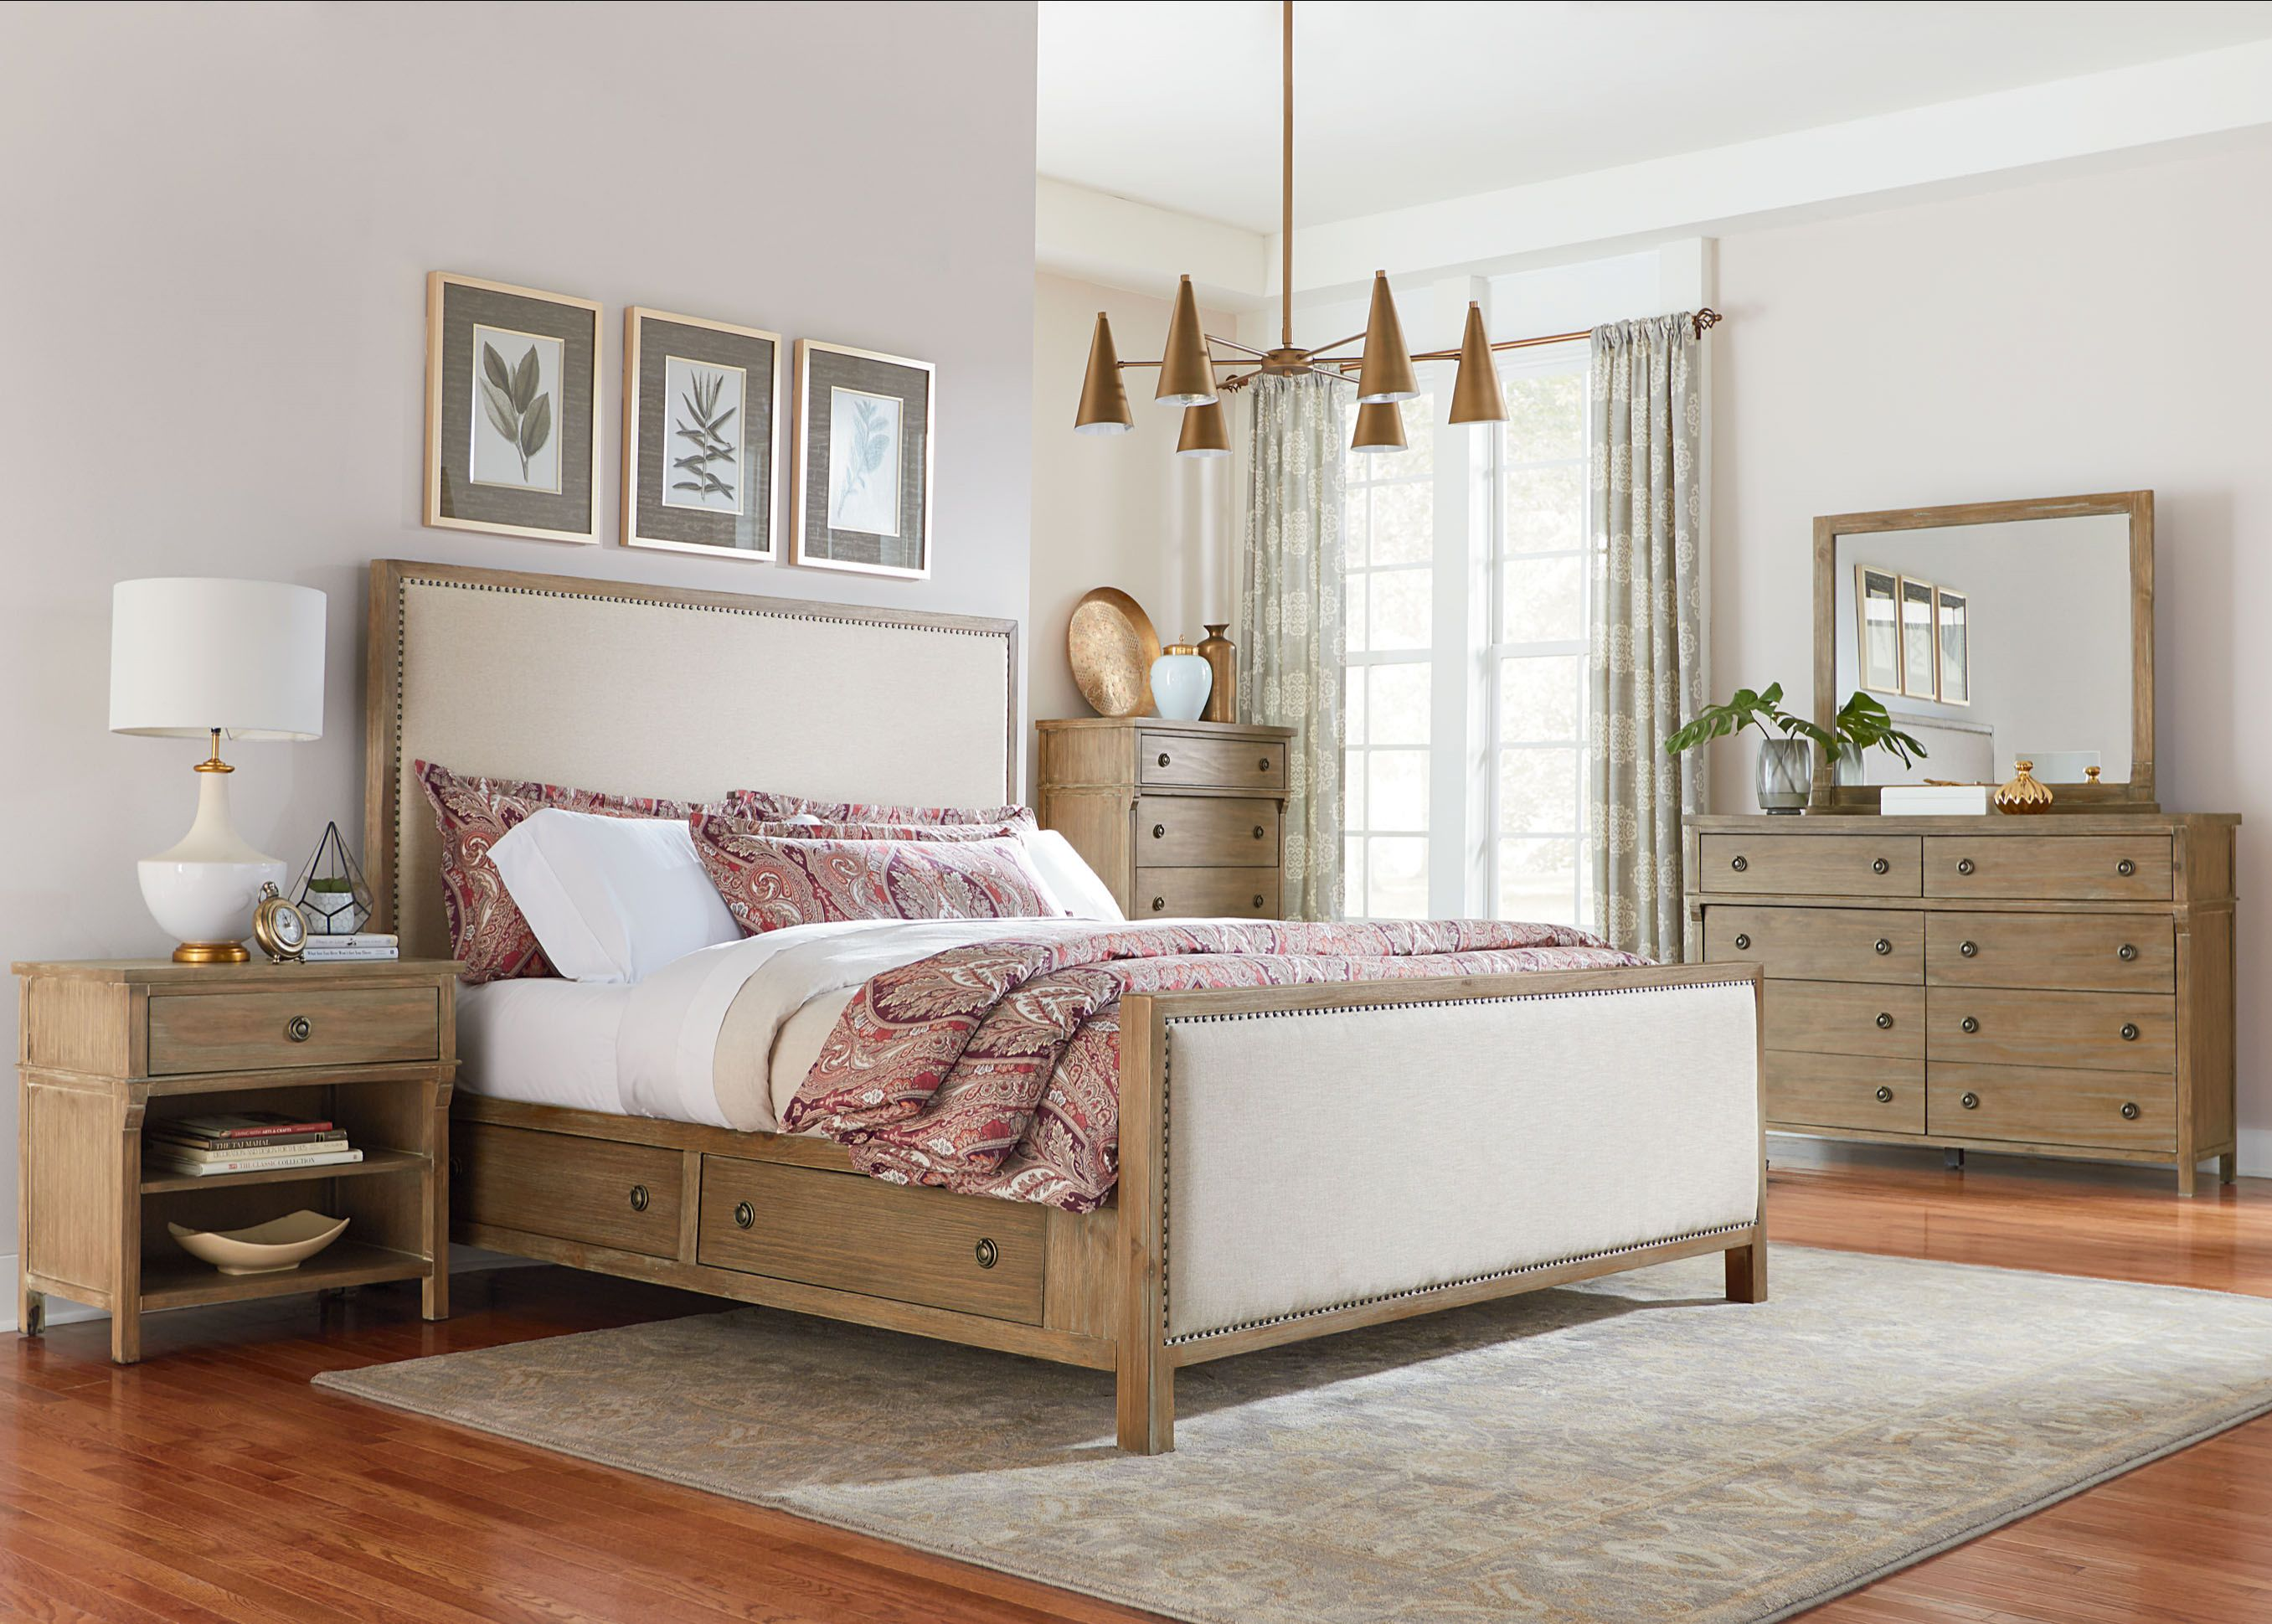 95950 Savannah Court  Uph Panel Bed Rs